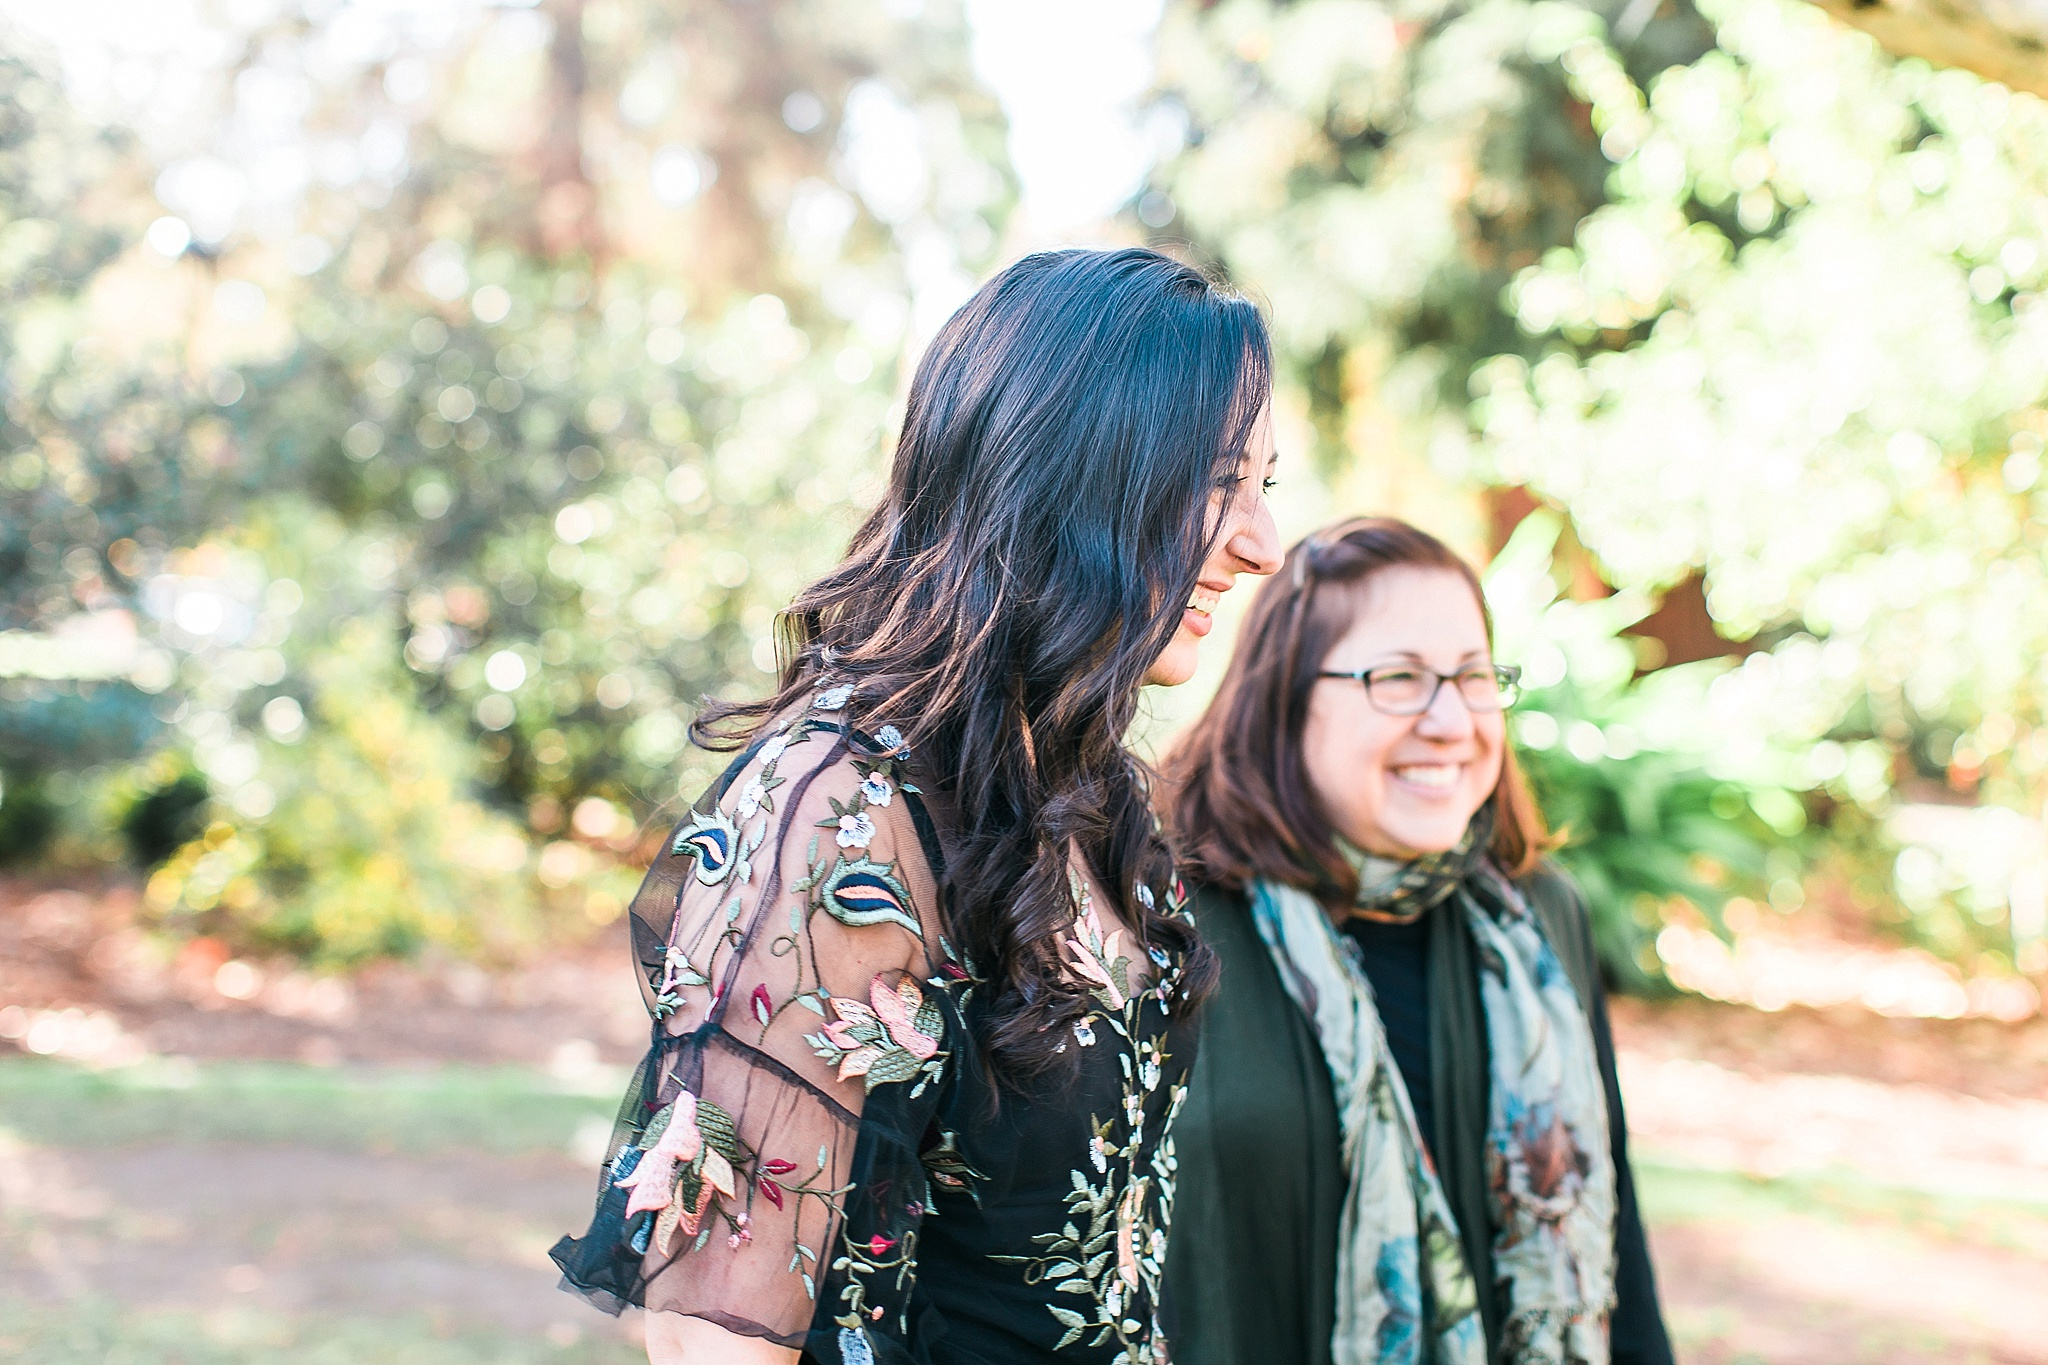 Claremont-Colleges-Family-Photos-17_WEB.jpg